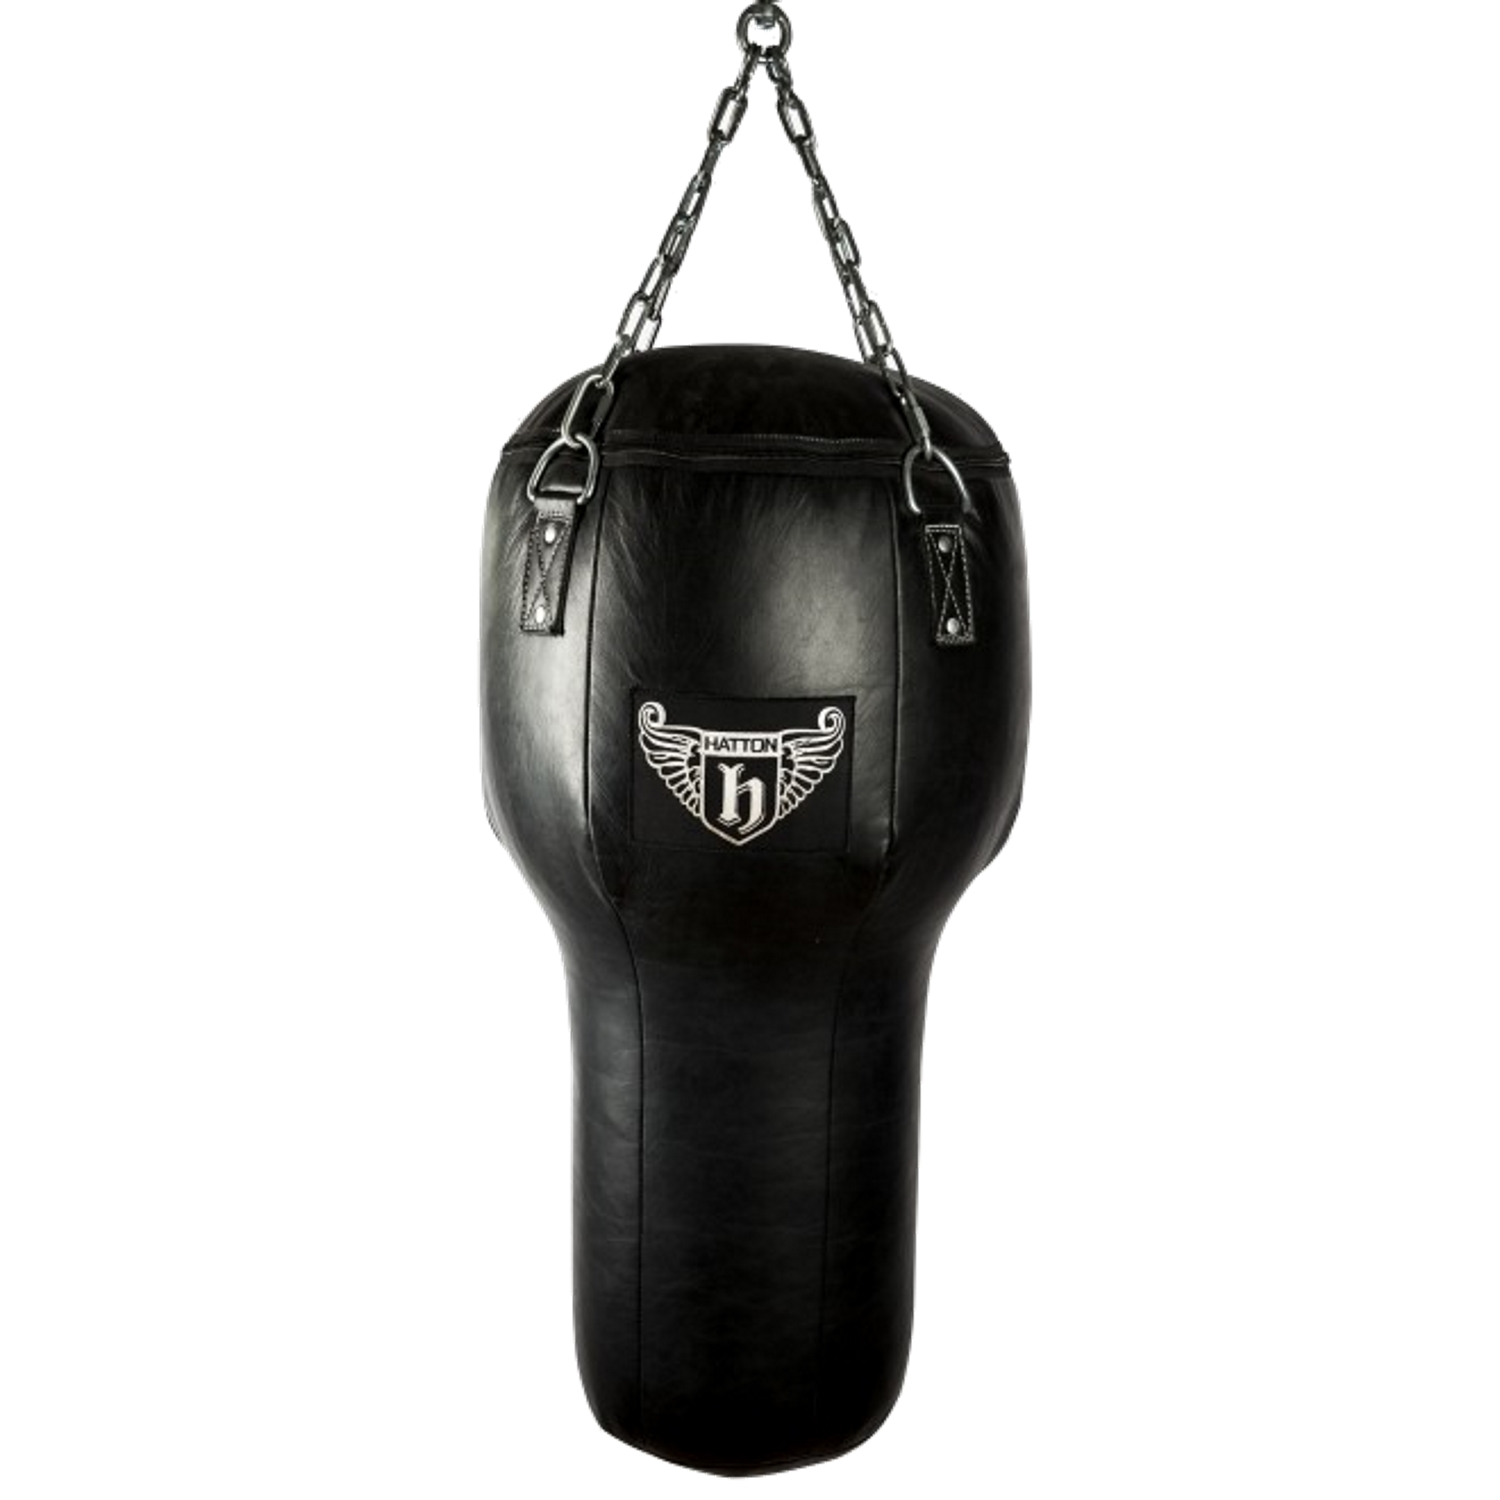 Hatton Uppercut Bag